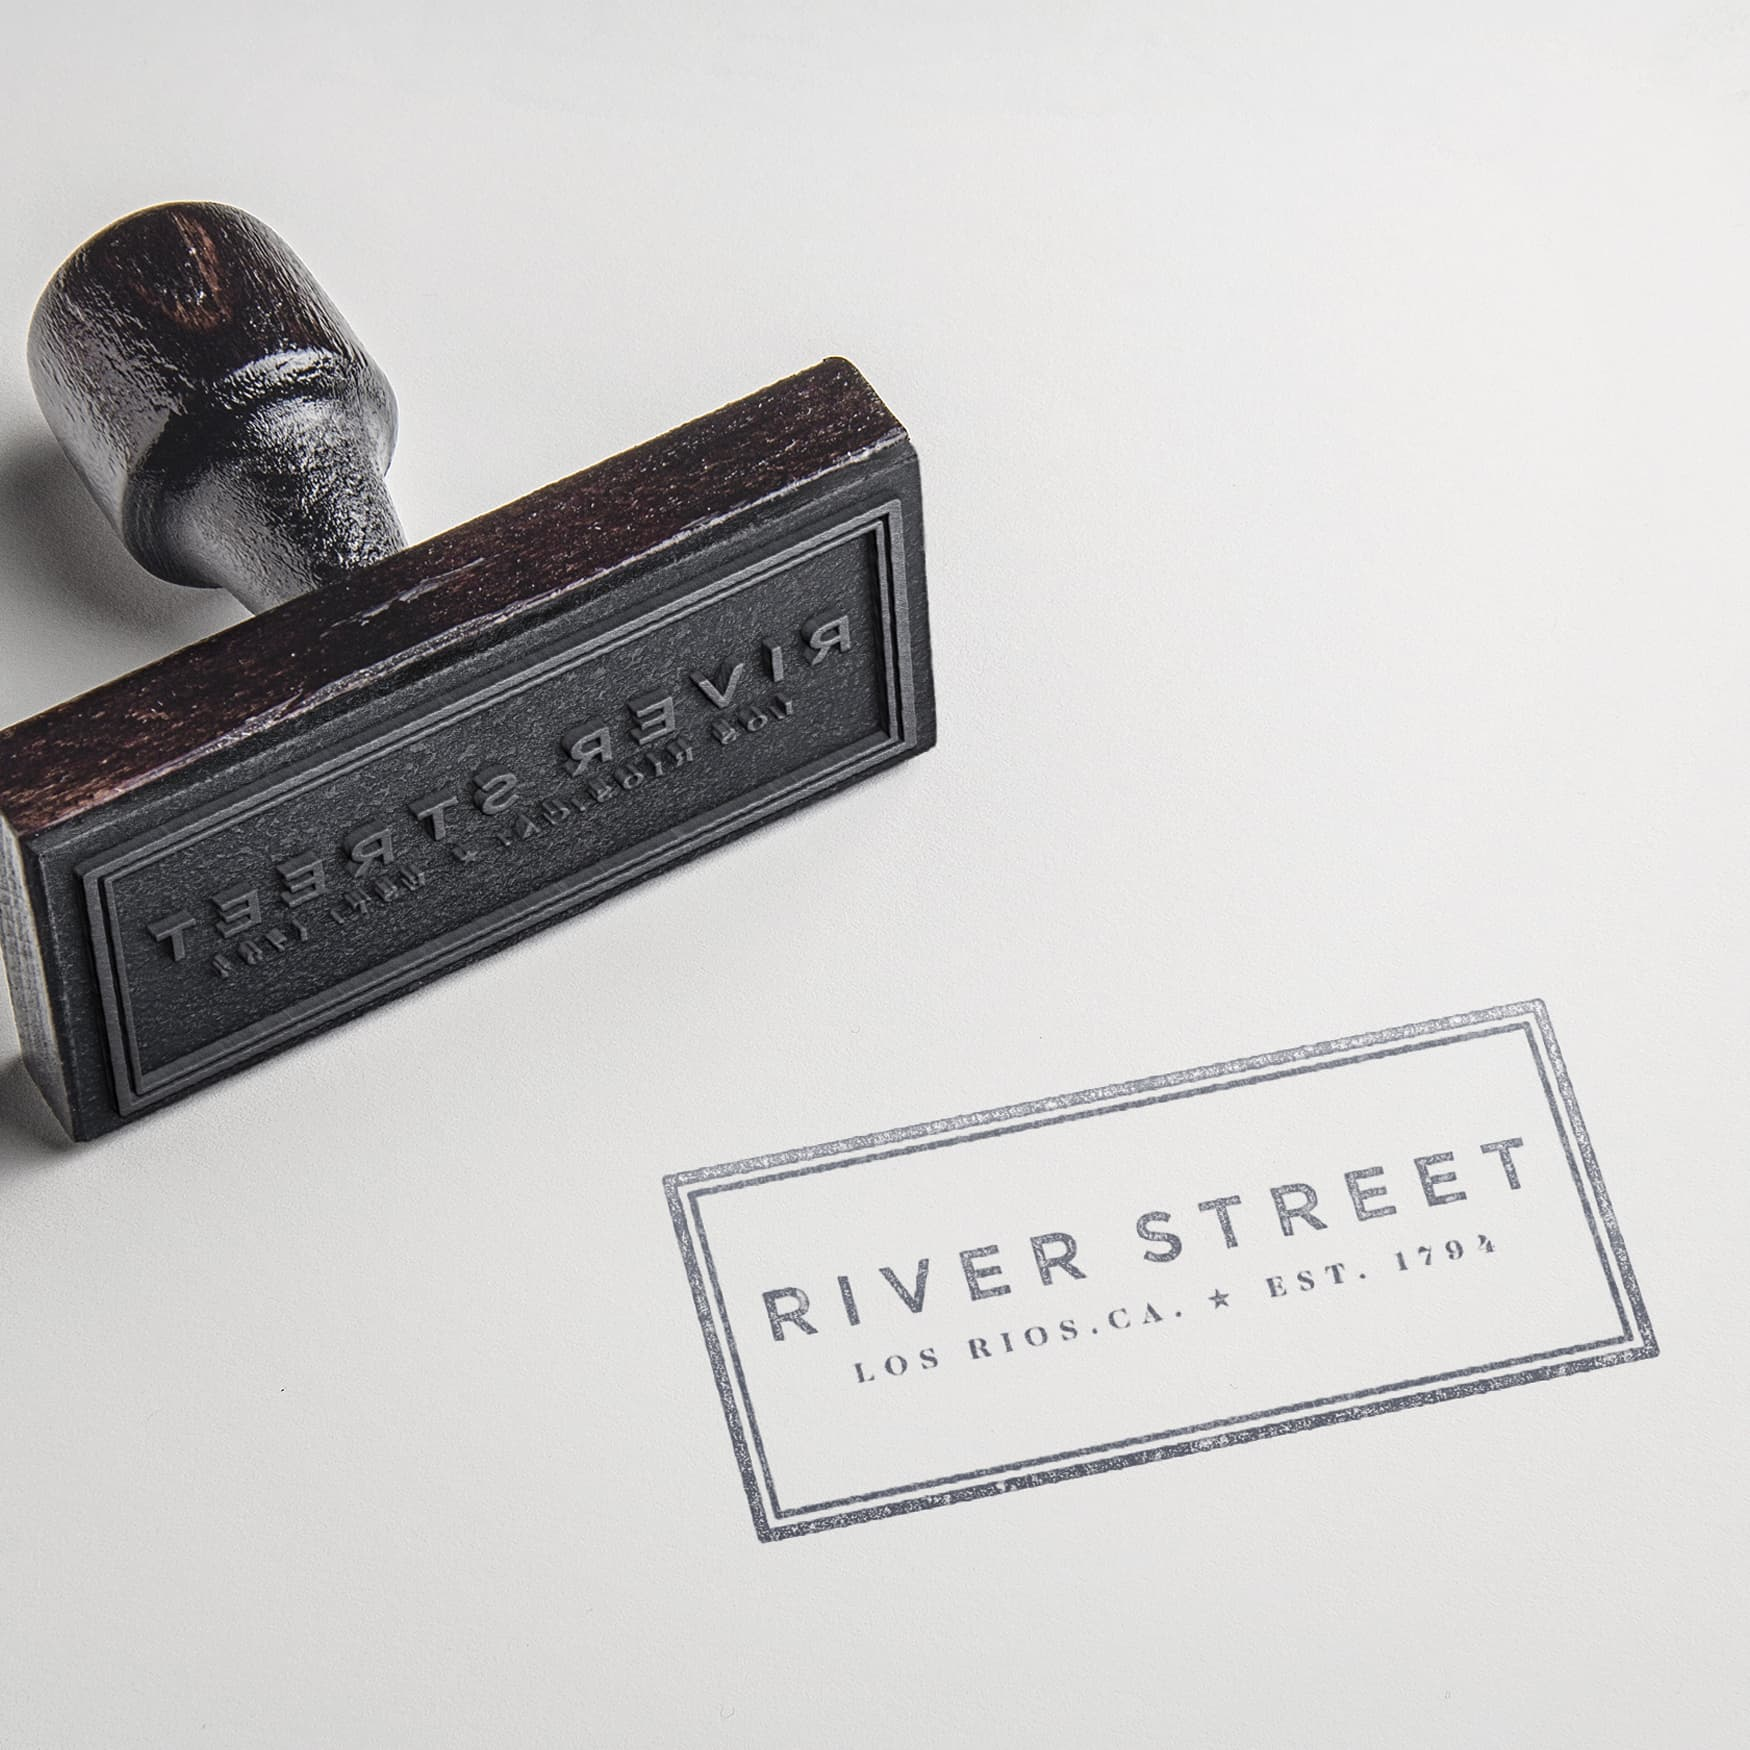 River Streeet, a mixed-use project in the historic and cultural center of San Juan Capistrano, California. Branding collateral